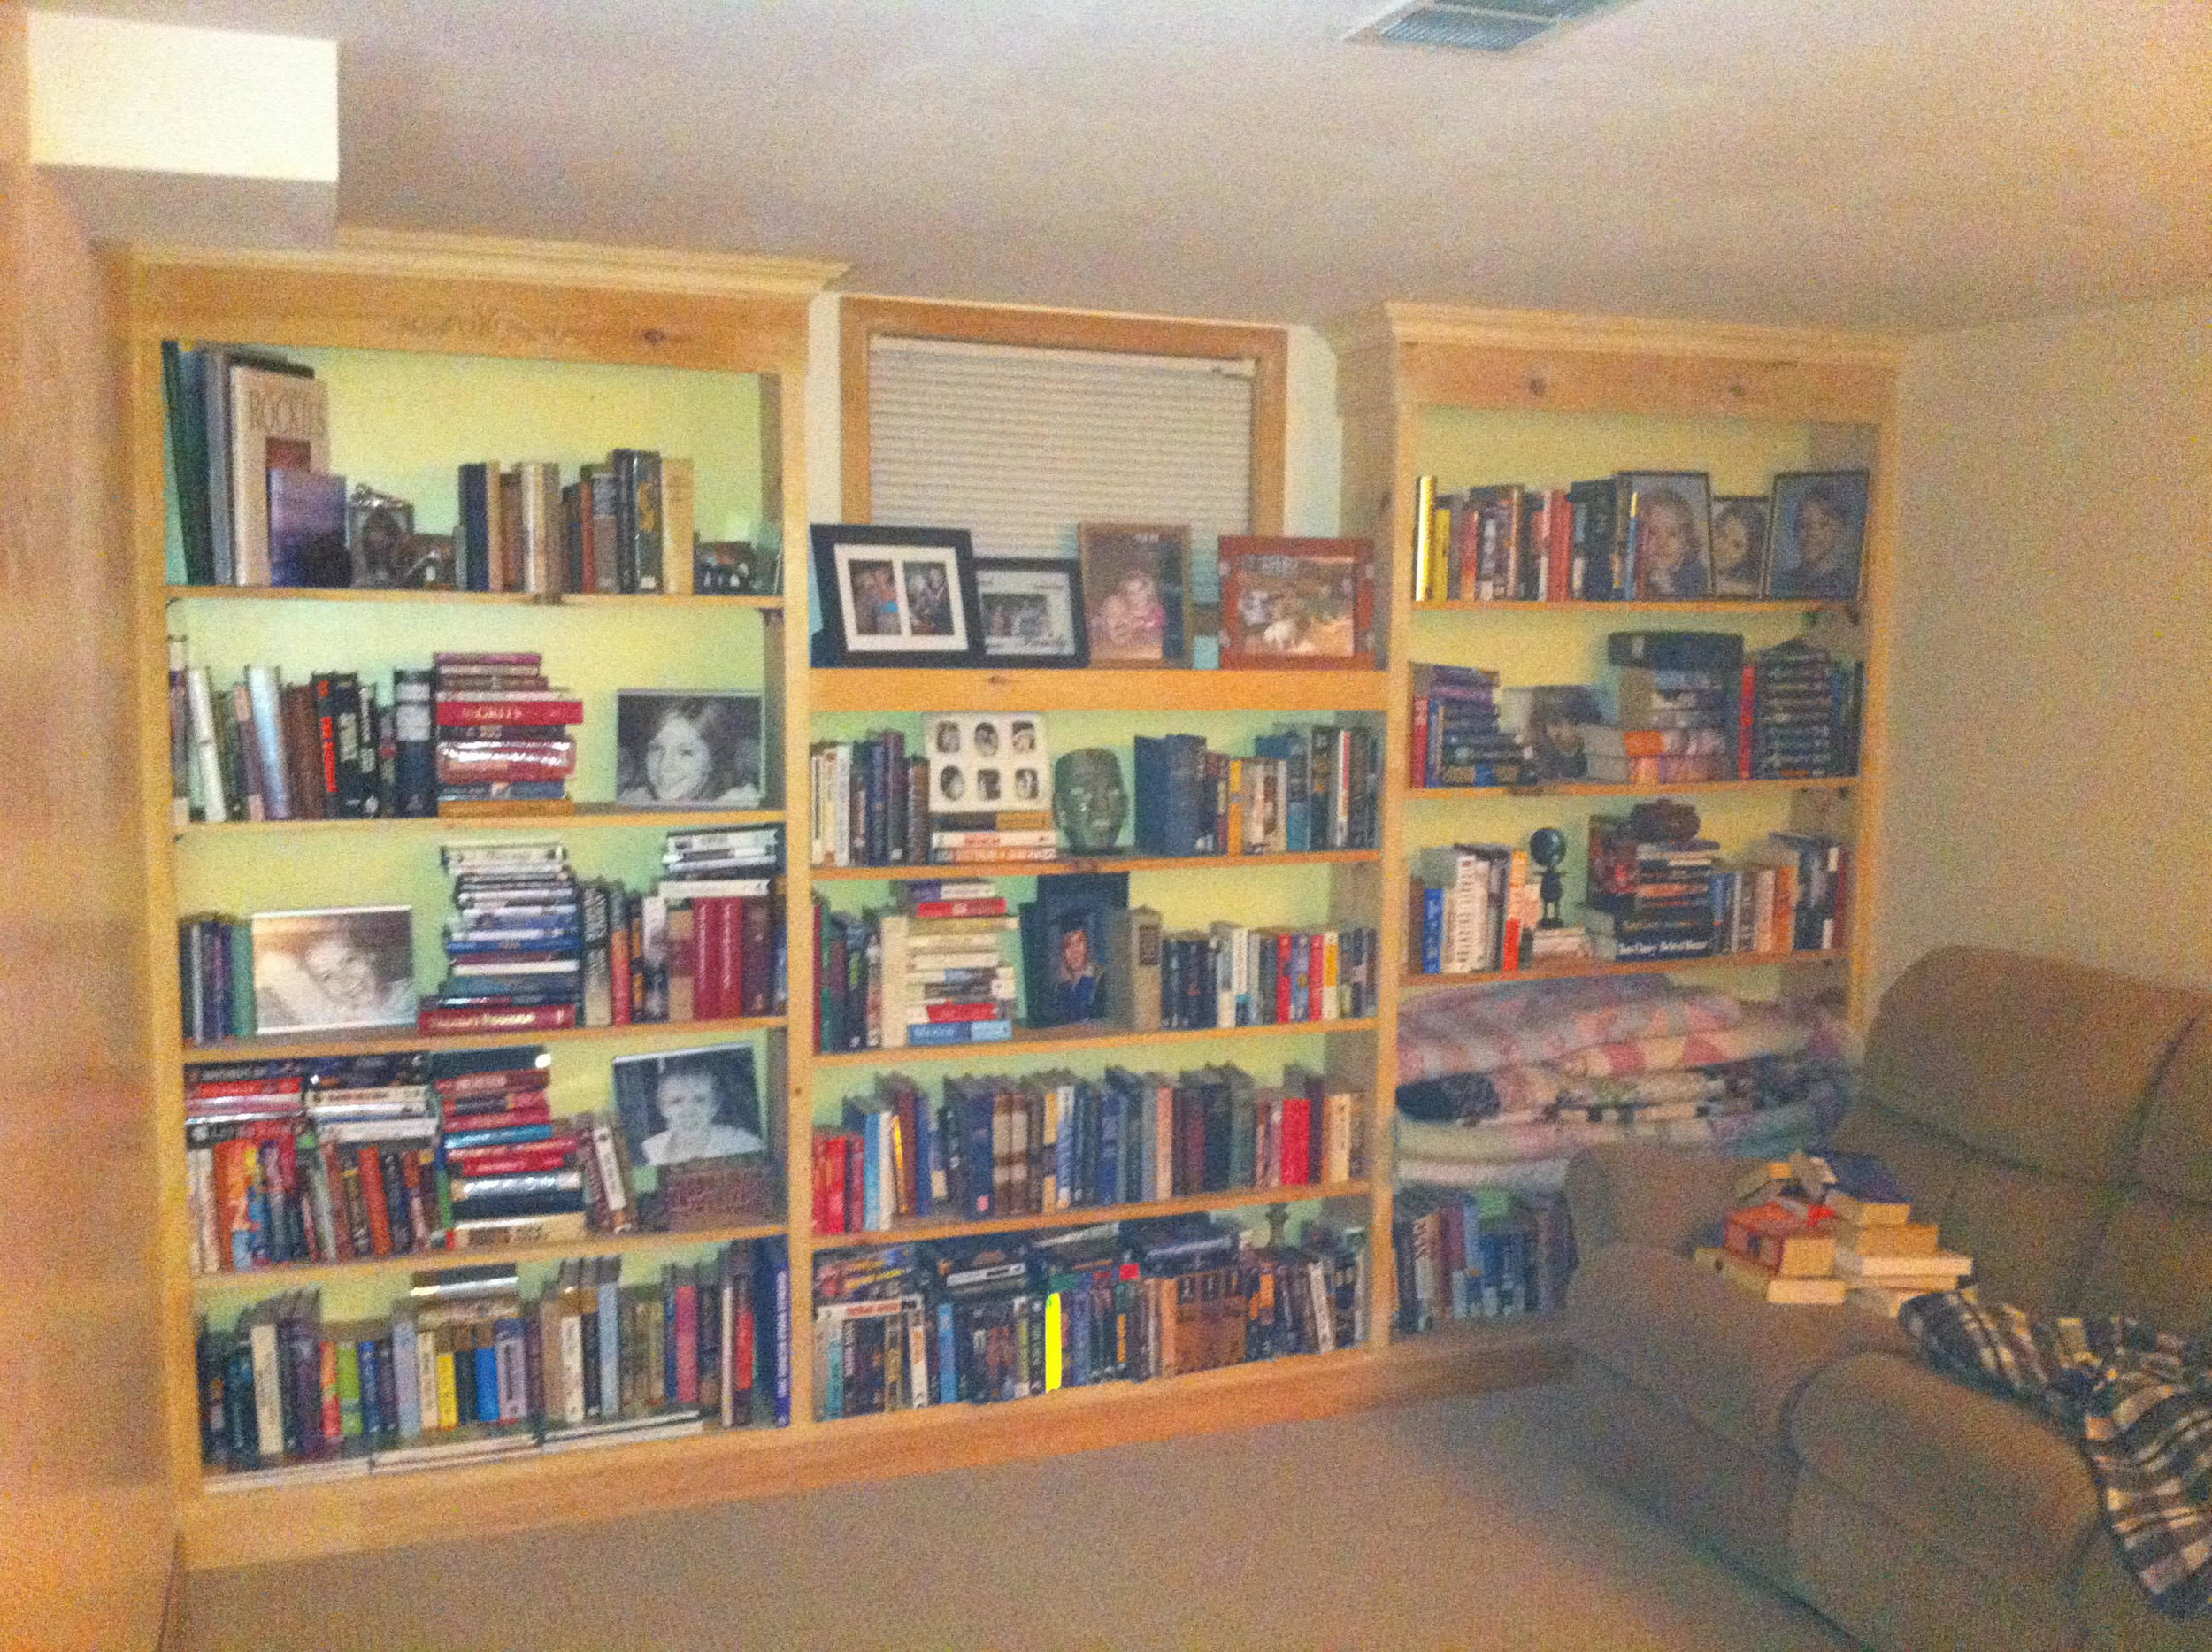 Built In Bookshelf -